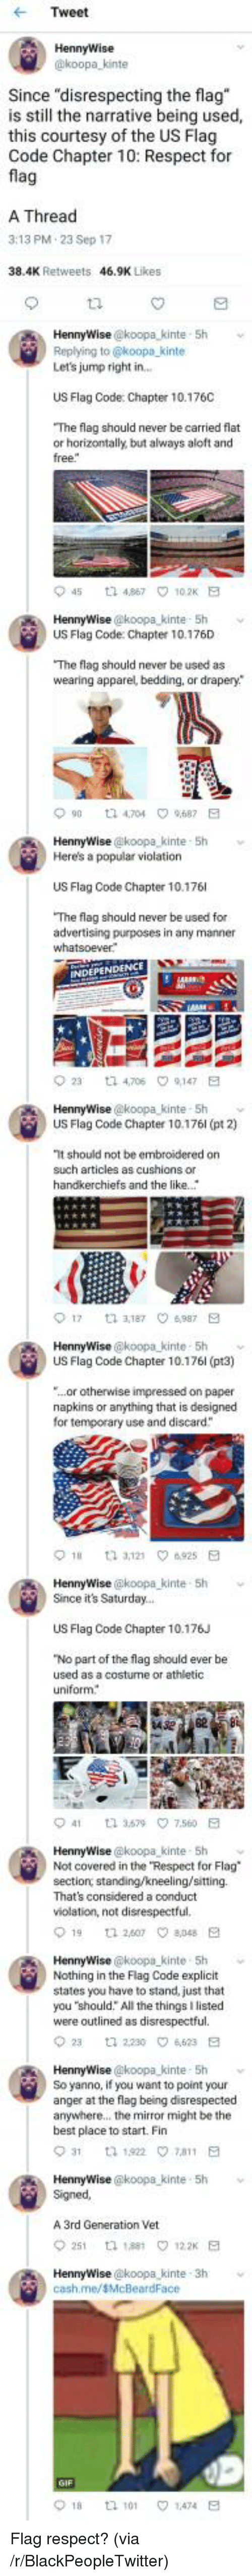 "bedding: Tweet  HennyWise  koopa kinte  Since ""disrespecting the flag  is still the narrative being used,  this courtesy of the US Flag  Code Chapter 10: Respect for  fla  A Thread  3:13 PM.23 Sep 17  38.4K Retweets  46.9K Likes  HennyWise @koopa_kinte 5h  Replying to @koopa kinte  Let's jump right in  US Flag Code: Chapter 10.176C  The flag should never be carried flat  or horizontally, but always aloft and  free  45 t2 467 102K E  US Flag Code: Chapter 10.176D  The flag should never be used as  wearing apparel, bedding, or drapery*  90 t 4704 9687 E  HennyWise @koopa kinte 5h  Here's a popular violation  US Flag Code Chapter 10.176  The flag should never be used for  advertising purposes in any manner  23  ta 4,706  9,147  HennyWise @koopa kinte- Sh  US Flag Code Chapter 10.176l (pt 2)  It should not be embroidered on  such articles as cushions or  handkerchiefs and the like.  017  3,187 ㅇ6,987  HennyWise @koopa kinte- 5h  US Flag Code Chapter 10.176l (pt3)  ...or otherwise impressed on paper  napkins or anything that is designed  for temporary use and discard  HennyWise @koopa-kinte , 5h  Since it's Saturday..  ﹀  US Flag Code Chapter 10.176J  No part of the flag should ever be  used as a costurne or athletic  uniform  41  3.579\7.560  HennyWise @koopa kinte 5h  Not covered in the Respect for Flag  section, standing/kneeling/sitting.  That's considered a conduct  violation, not disrespectful.  19 1 260708E  HennyWise @koopa kinte 5h  Nothing in the Flag Code explicit  states you have to stand, just that  you ""should: All the things I listed  were outlined as disrespectful.  2  2230 4623 E  HennyWise @koopa kinte 5h v  So yanno, if you want to point your  anger at the flag being disrespected  anywhere.. the mirror might be the  best place to start. Fin  HennyWise @koopa kinte 5h  Signed  A 3rd Generation Vet  251 th 188 122 E  cash.me/sMcBeardFace  018  tl 101  1.474 <p>Flag respect? (via /r/BlackPeopleTwitter)</p>"